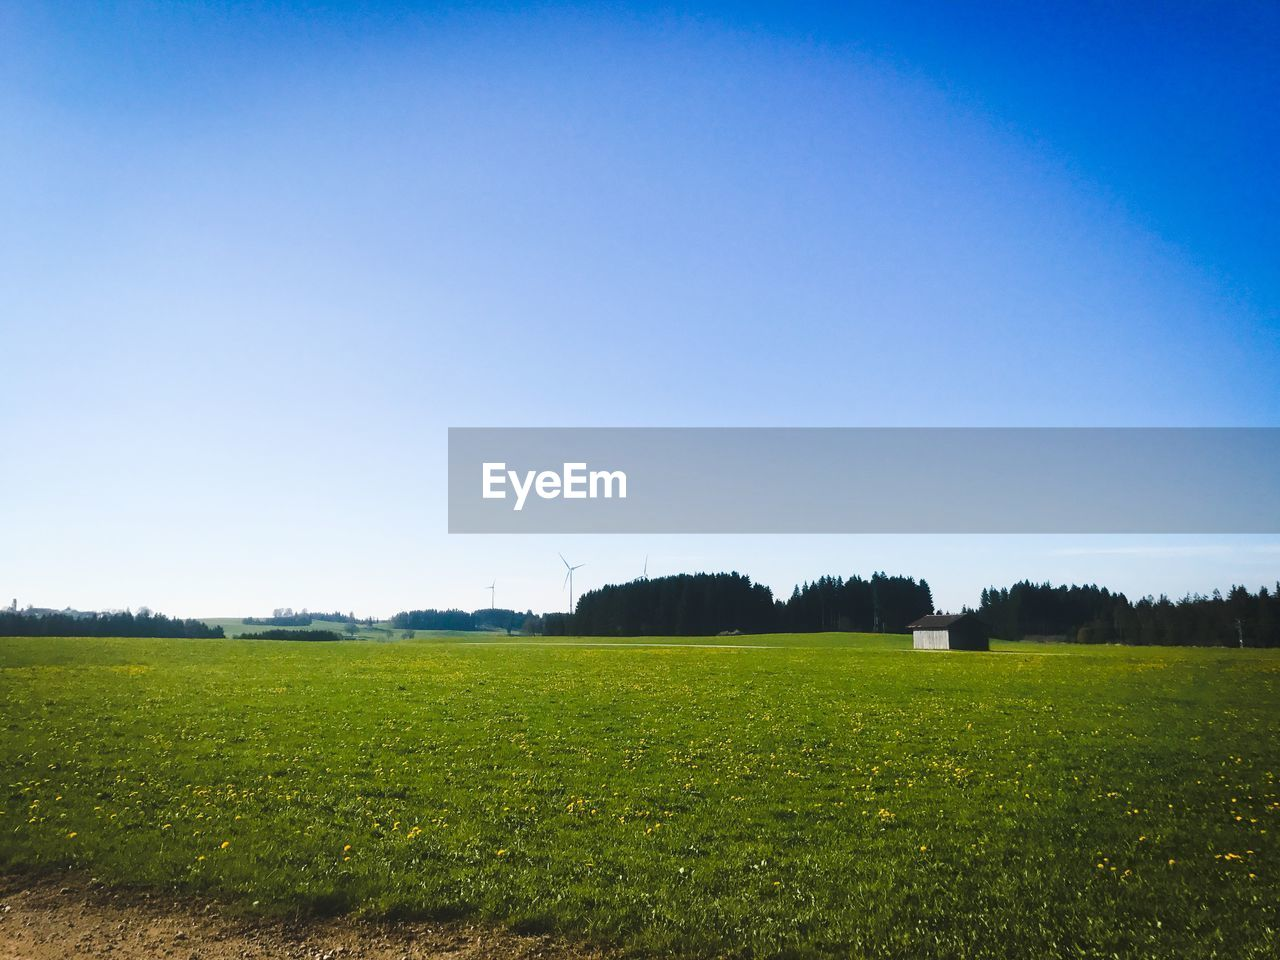 field, landscape, clear sky, tranquil scene, scenics, copy space, nature, agriculture, no people, tranquility, beauty in nature, grass, outdoors, rural scene, blue, tree, day, sky